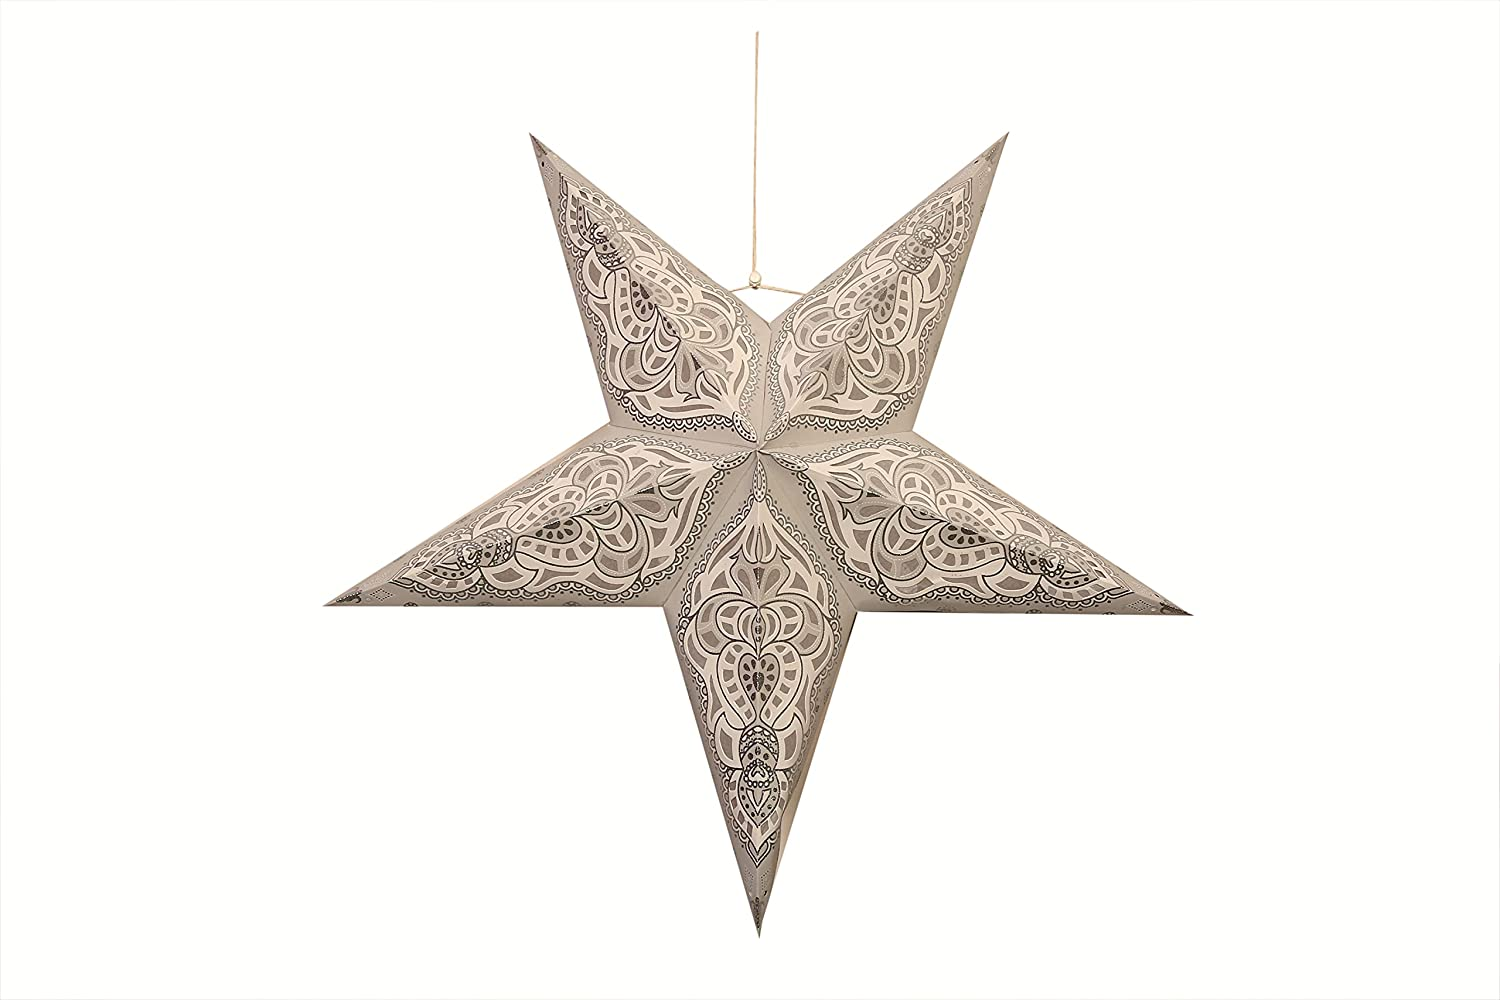 Fairy Star Lanterns Paper Star for Christmas/Diwali/Home Decorations/Parties/Valentine's Day - Size: 24 Inches (White)